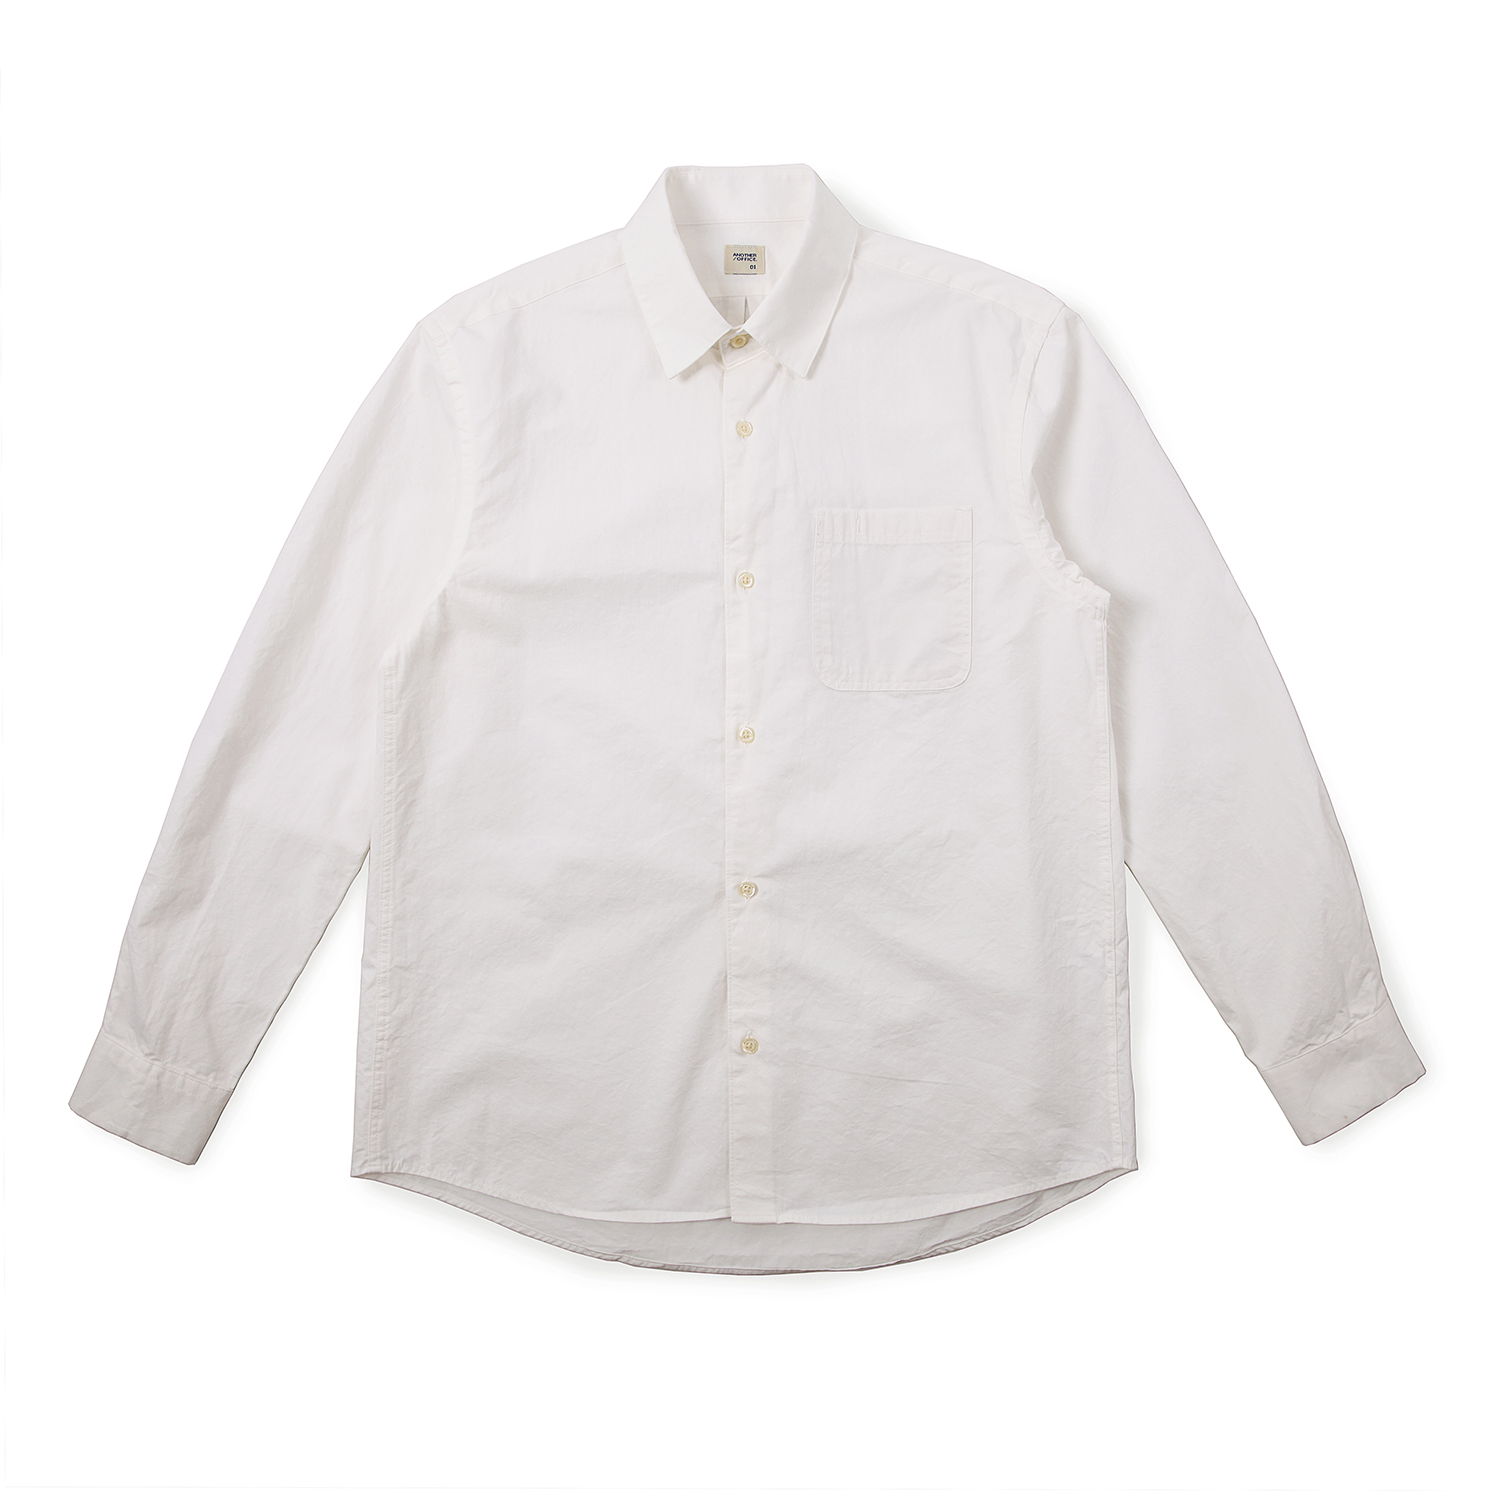 25% OFF_Daily Life Shirt (Off White)